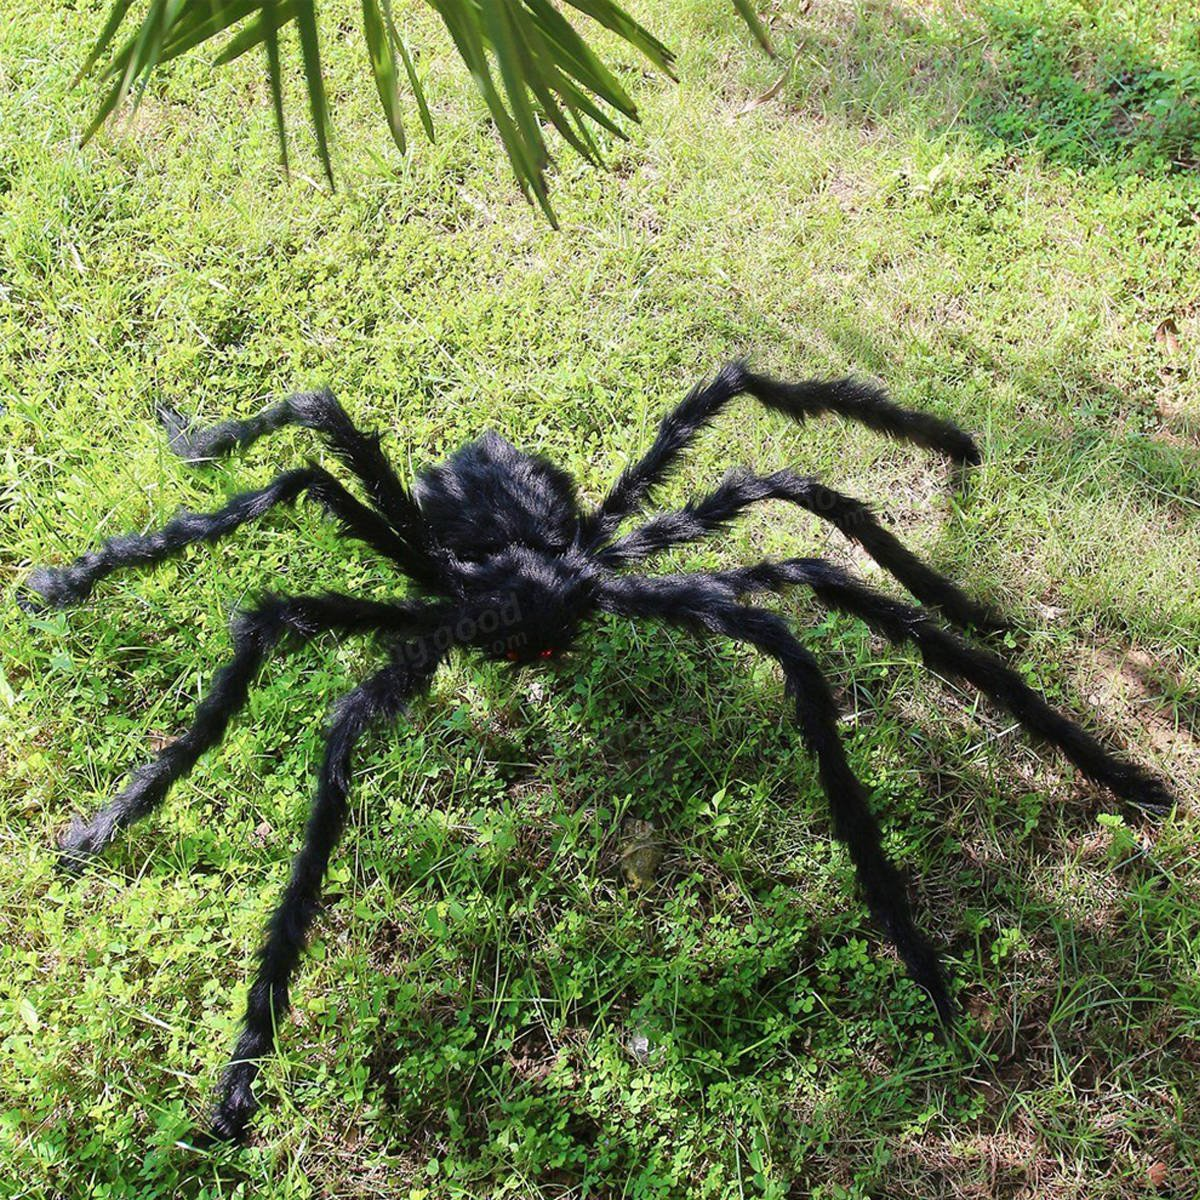 Behemoth - 5ft 150cm Hairy Giant Spider Decoration Huge Halloween Outdoor Decor Toy Party - Titan Goliath Jumbo Gargantuan Heavyweight Monster Star Colossu - 1PCs